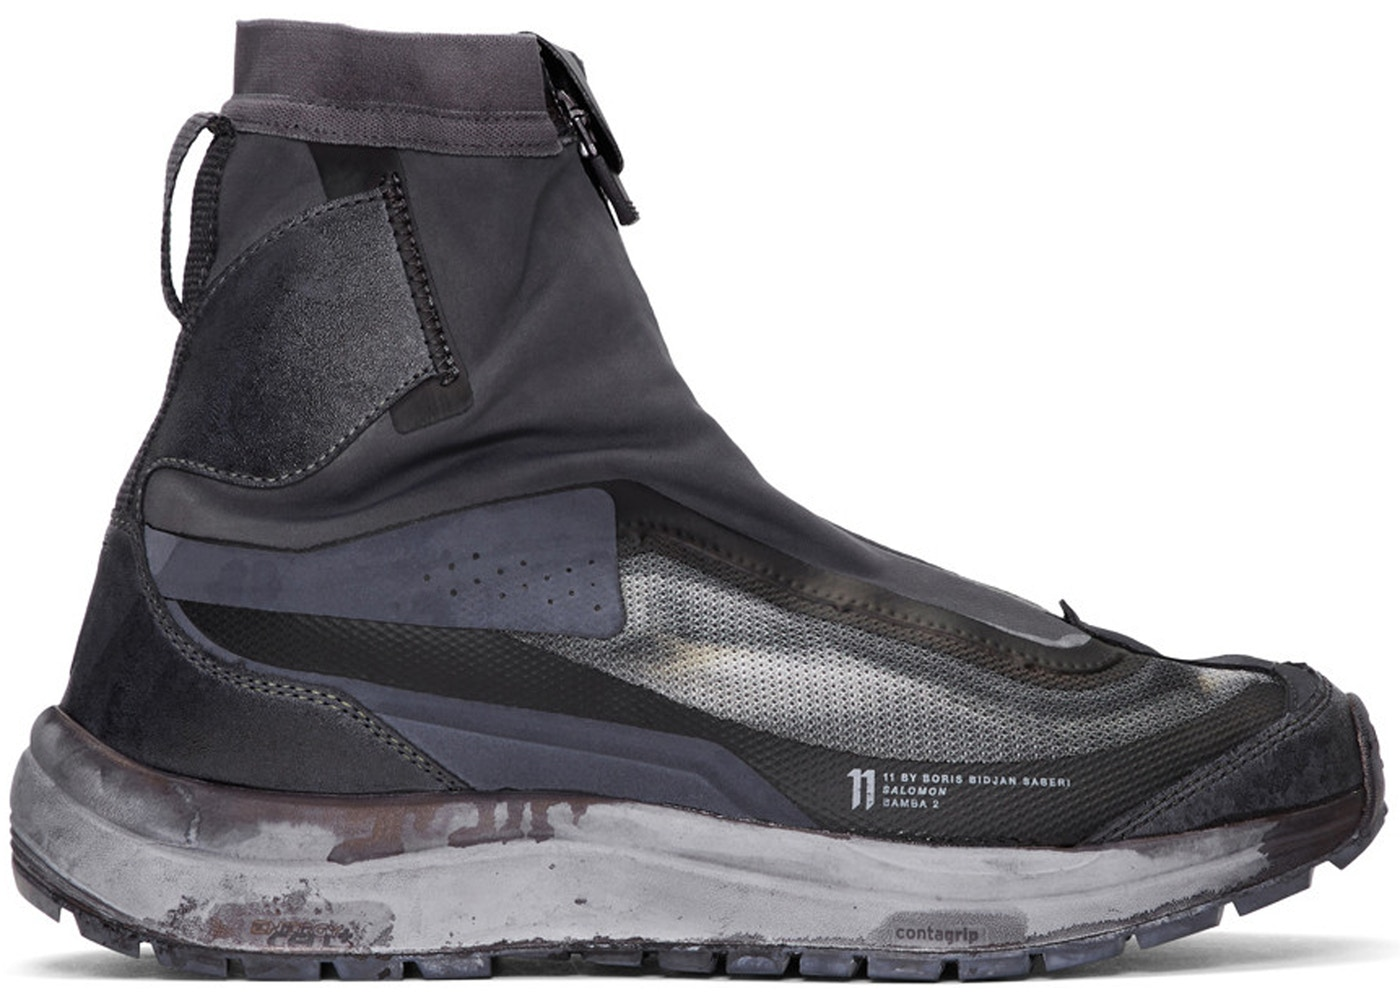 11 by Boris Bidjan Saberi x Salomon Edition Bamba 2 Low